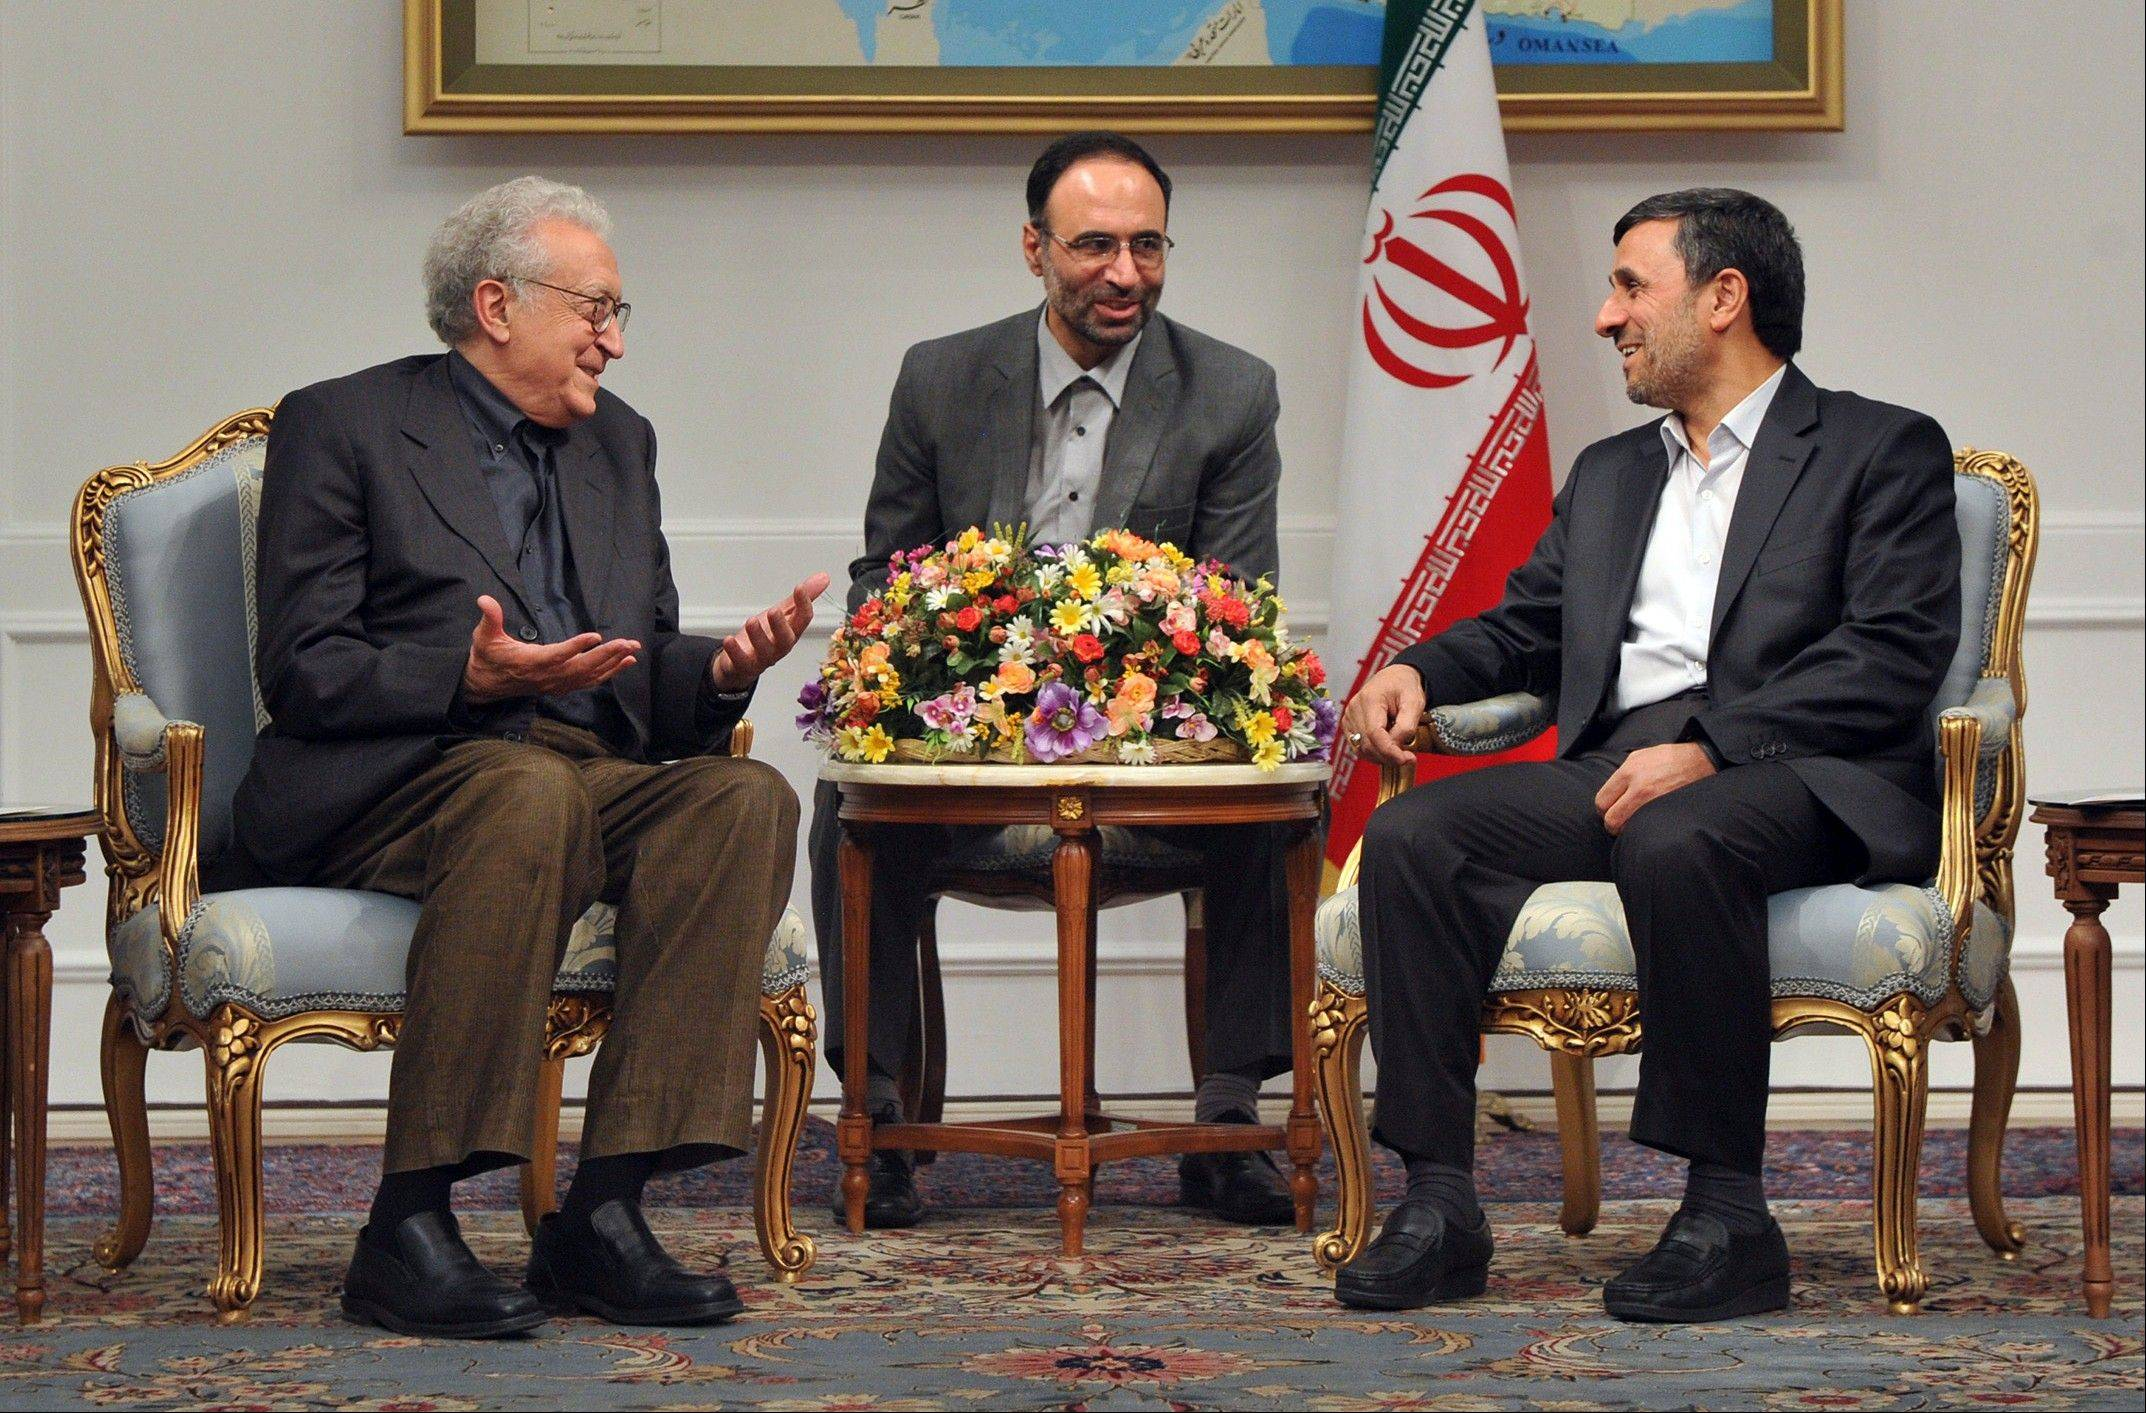 U.N. envoy on Syria, Lakhdar Brahimi, left, talks with Iranian President Mahmoud Ahmadinejad, during their meeting in Tehran, Iran, Sunday. An unidentified interpreter sits at center.